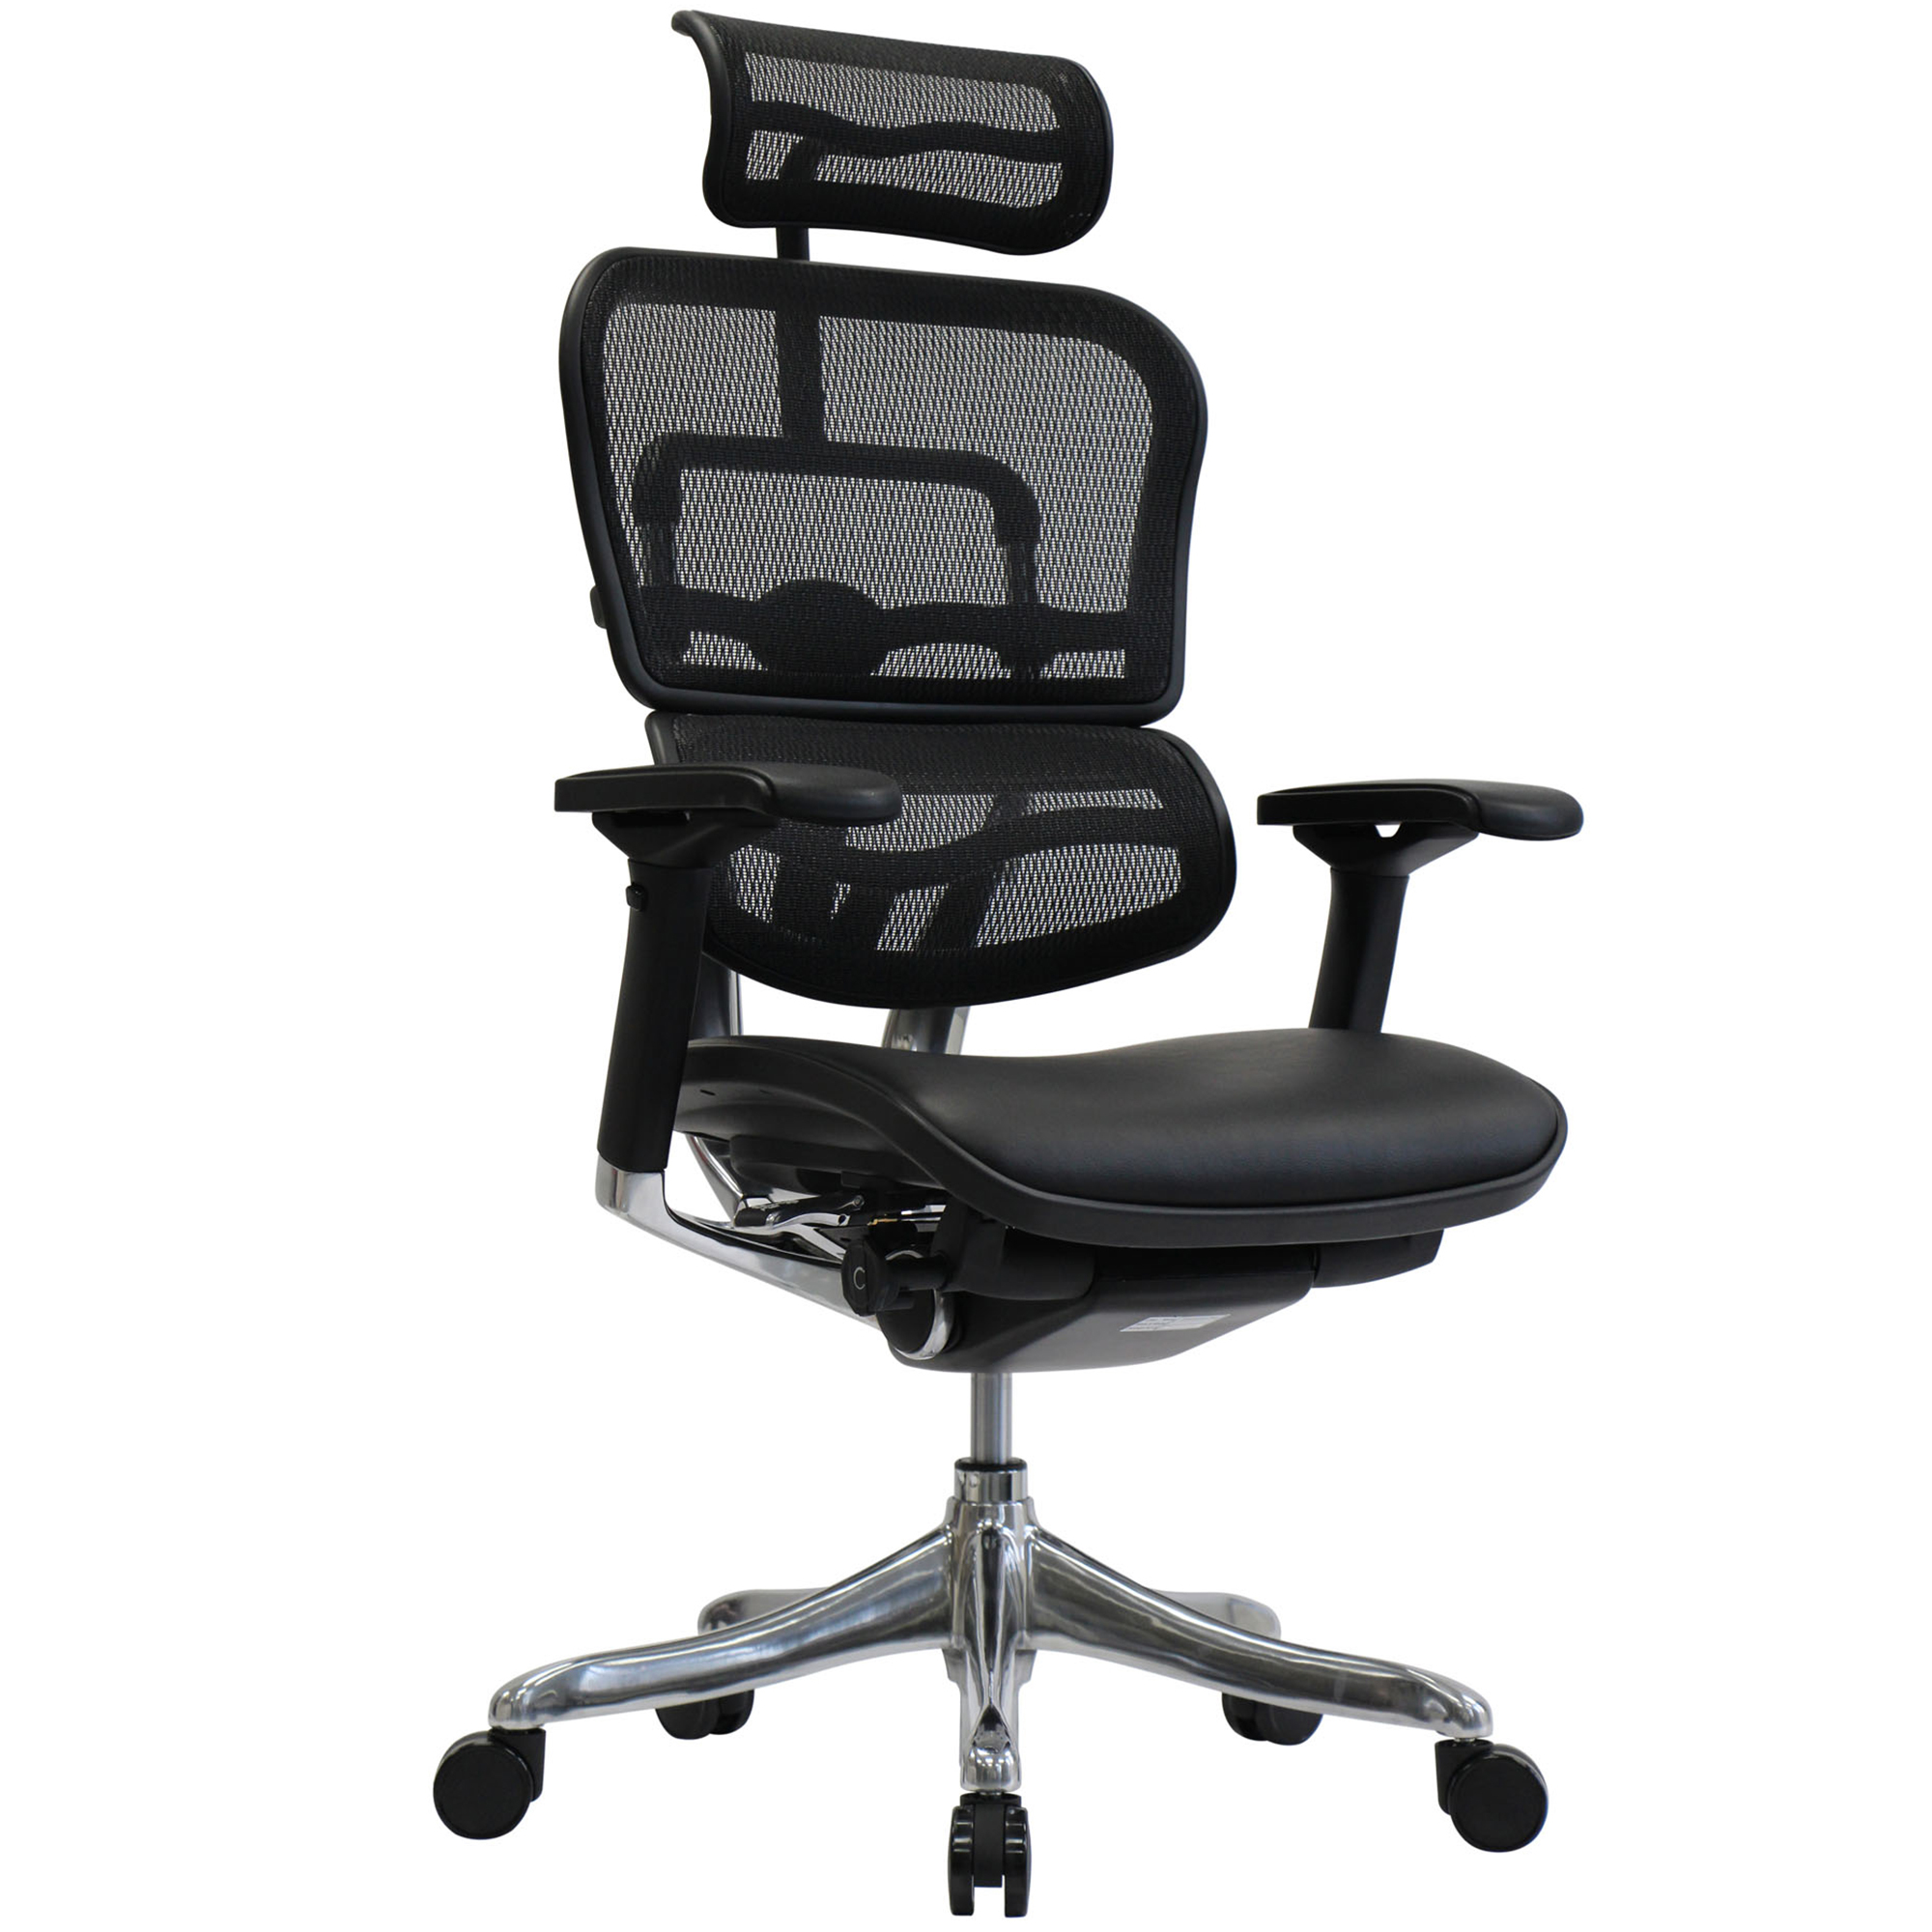 SKU TPWT2774 Ergohuman Leather Mesh V2 Plus Deluxe Office Chair Is Also Sometimes Listed Under The Following Manufacturer Numbers COEGPZBL